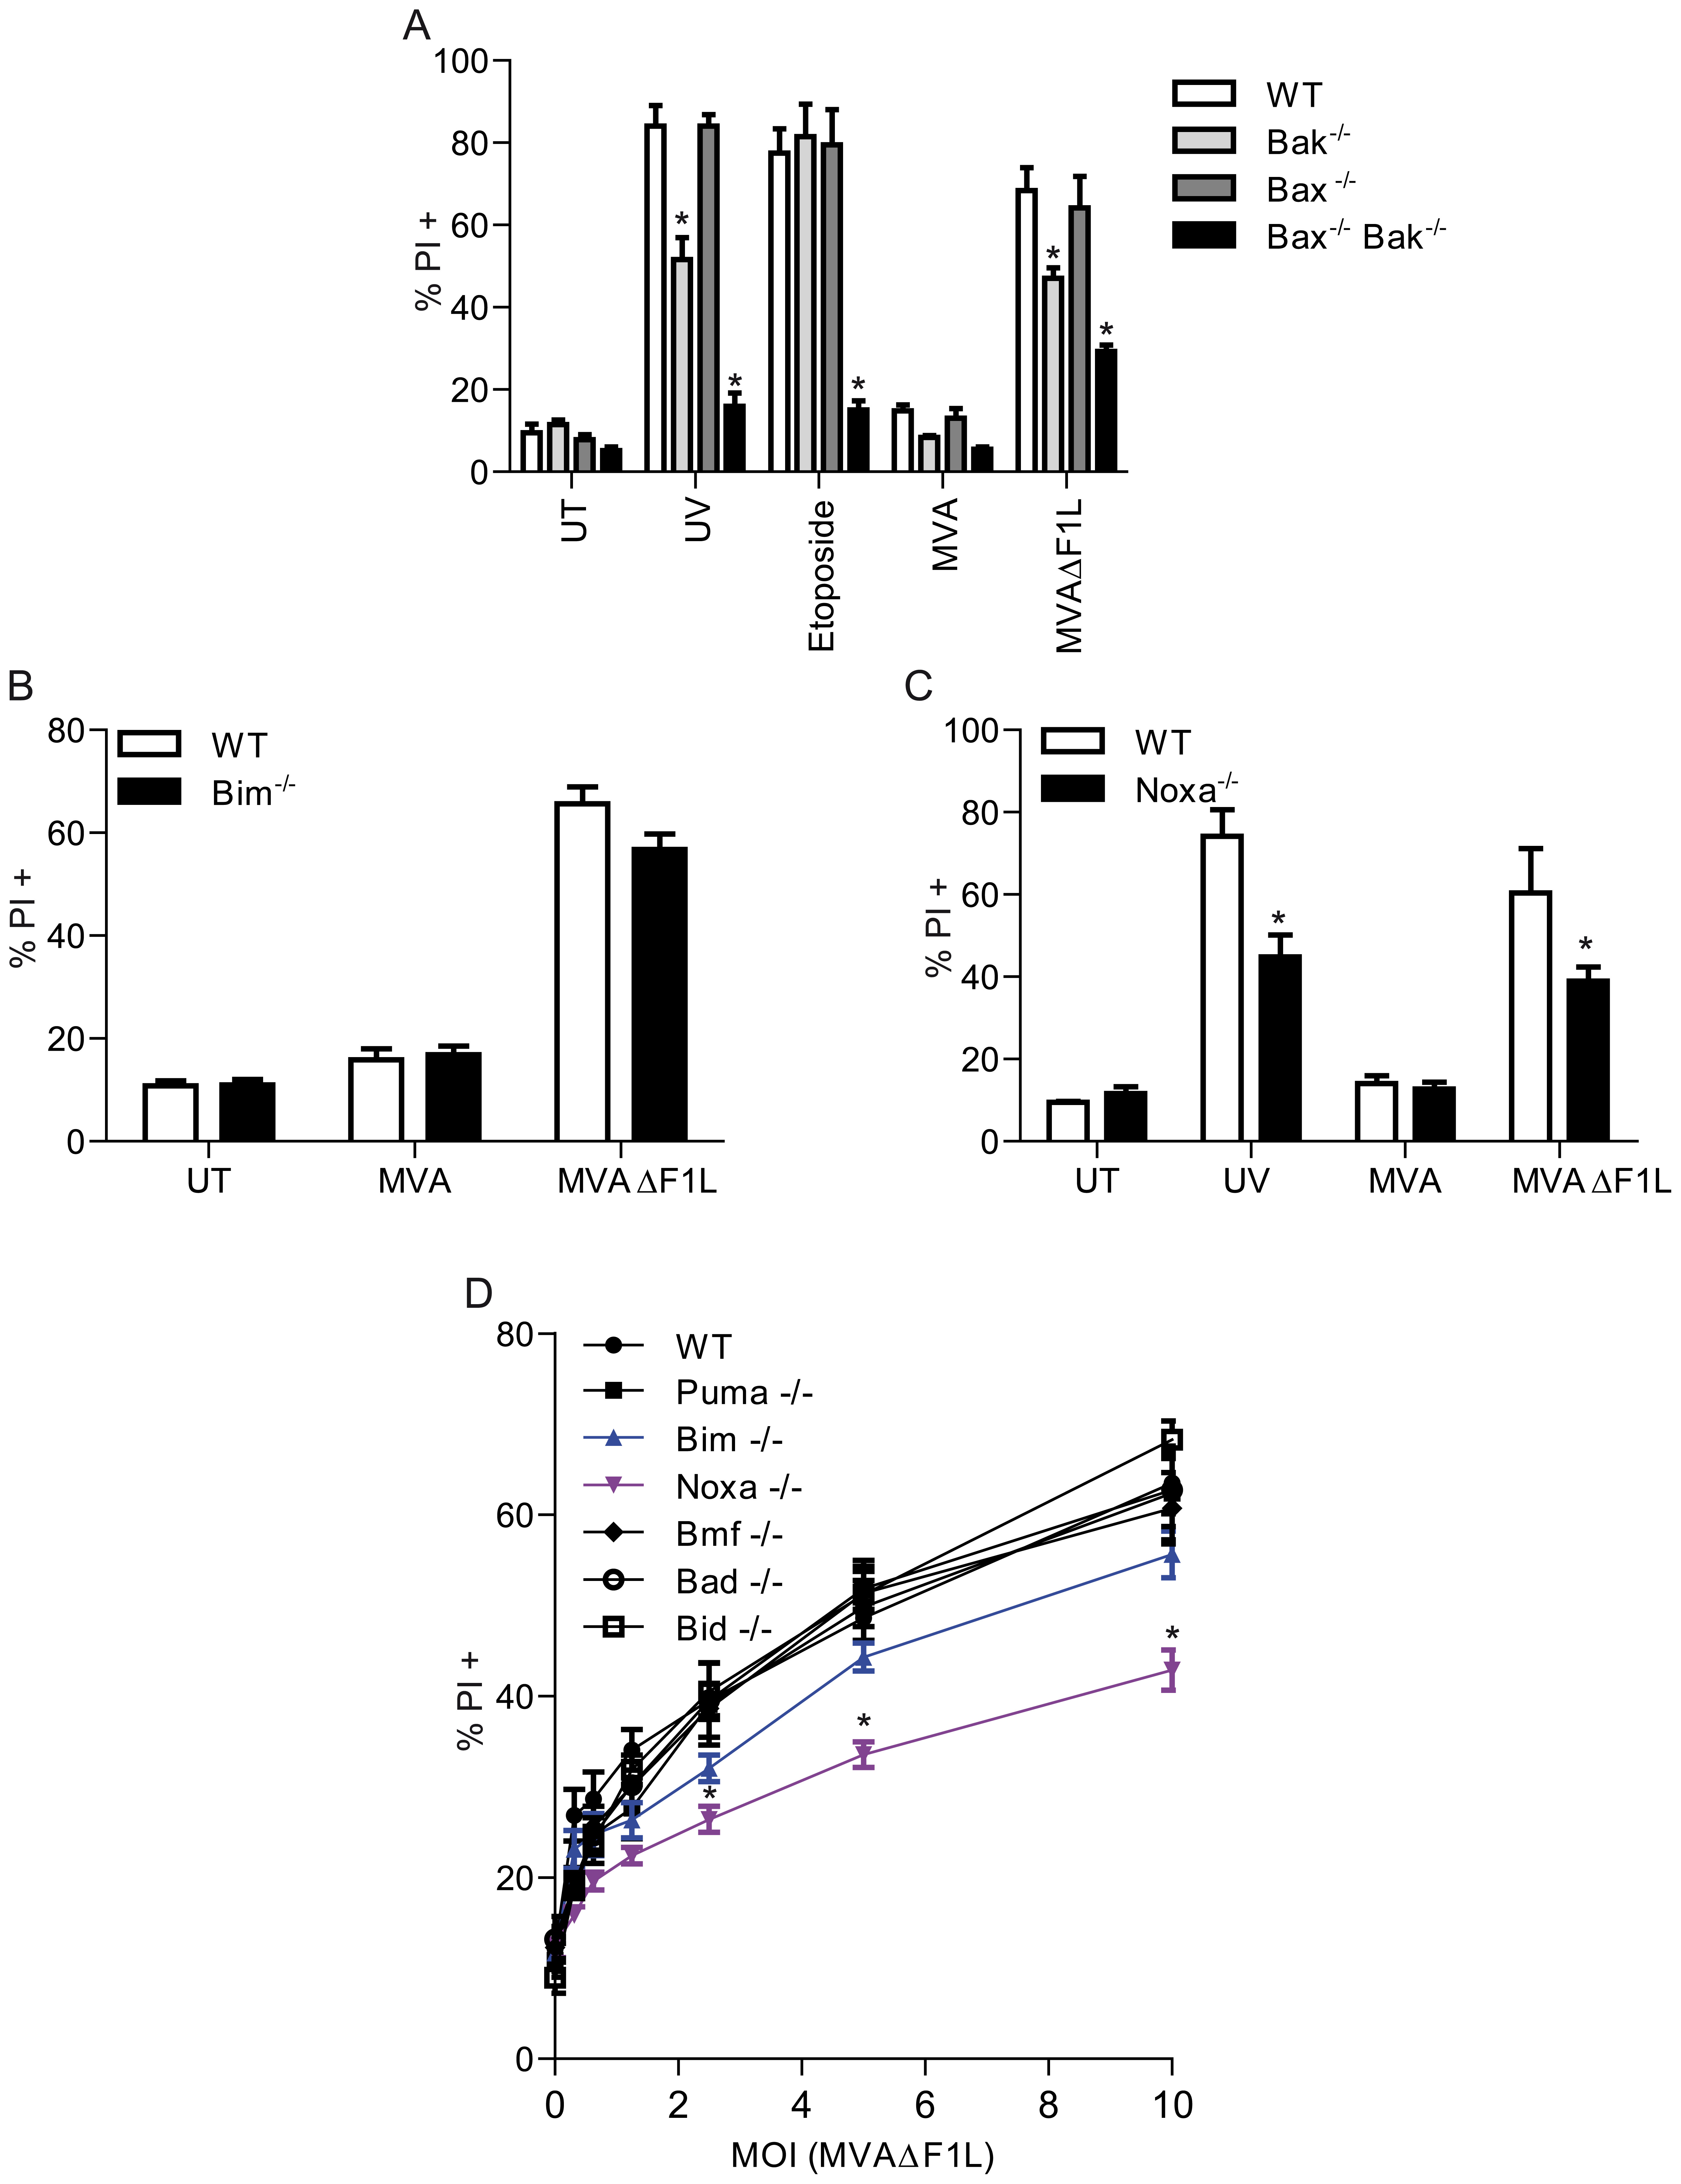 MVAΔF1L mediated apoptosis is predominantly induced by the BH3-only proteinNoxa.